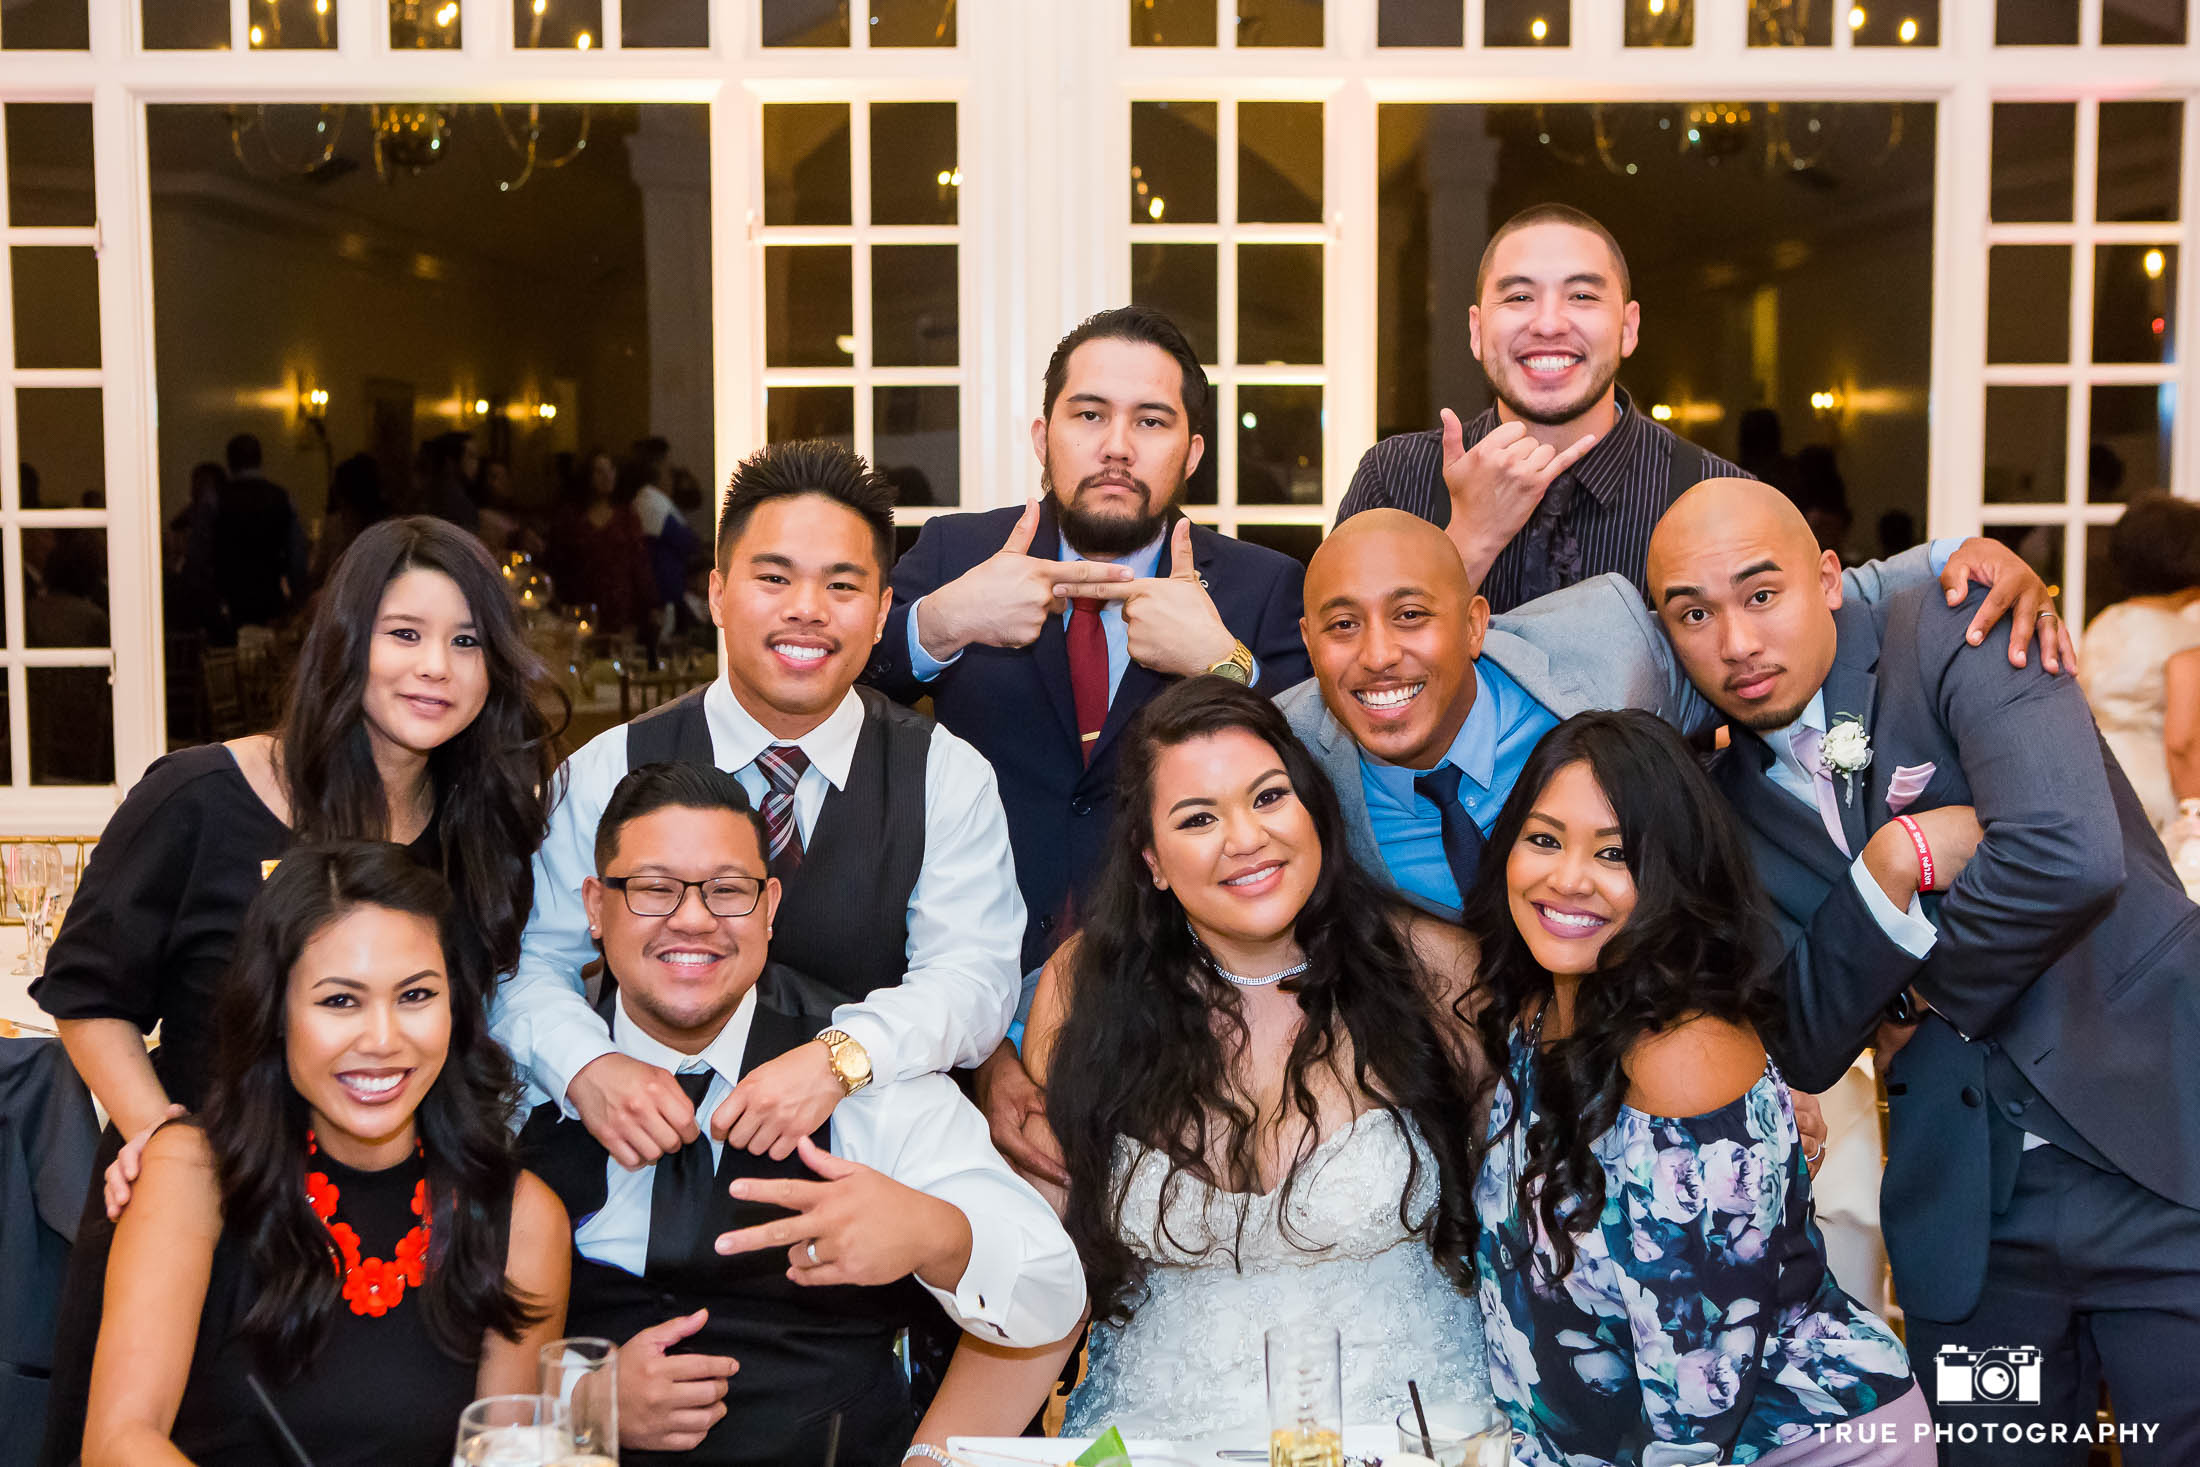 A Bride and groom have their guest join them at their table for a fun photo.